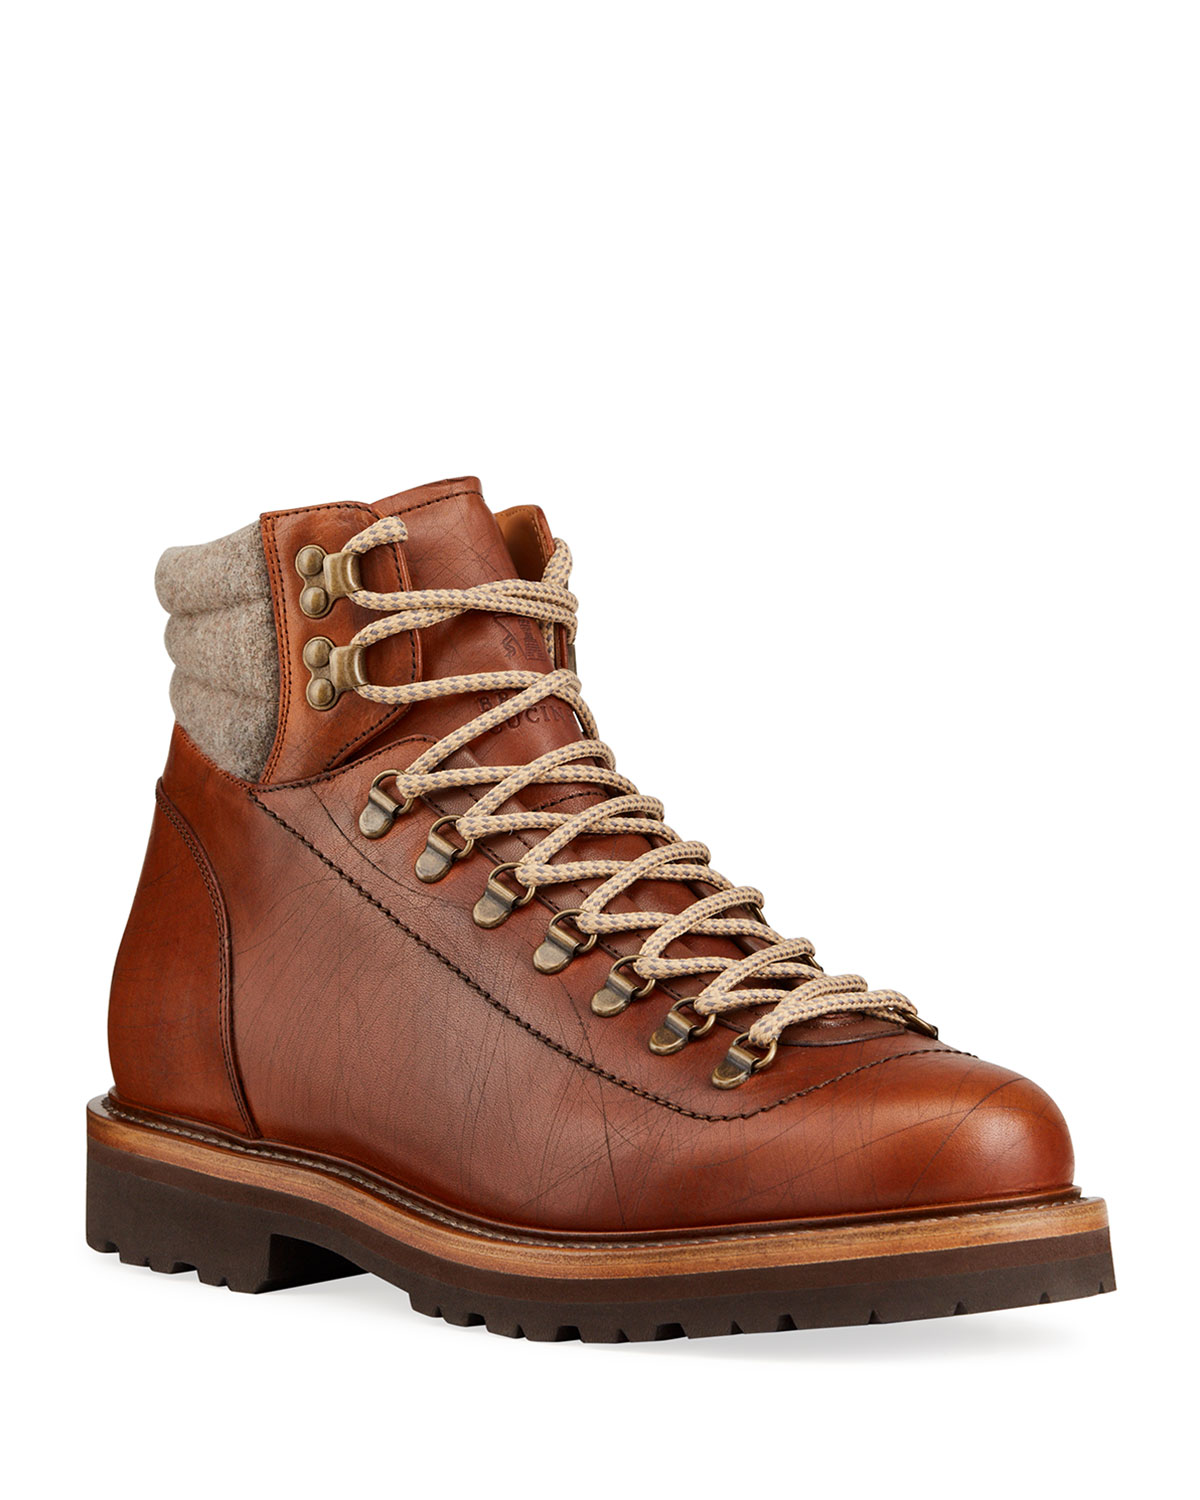 Brunello Cucinelli MEN'S LEATHER HIKING BOOTS